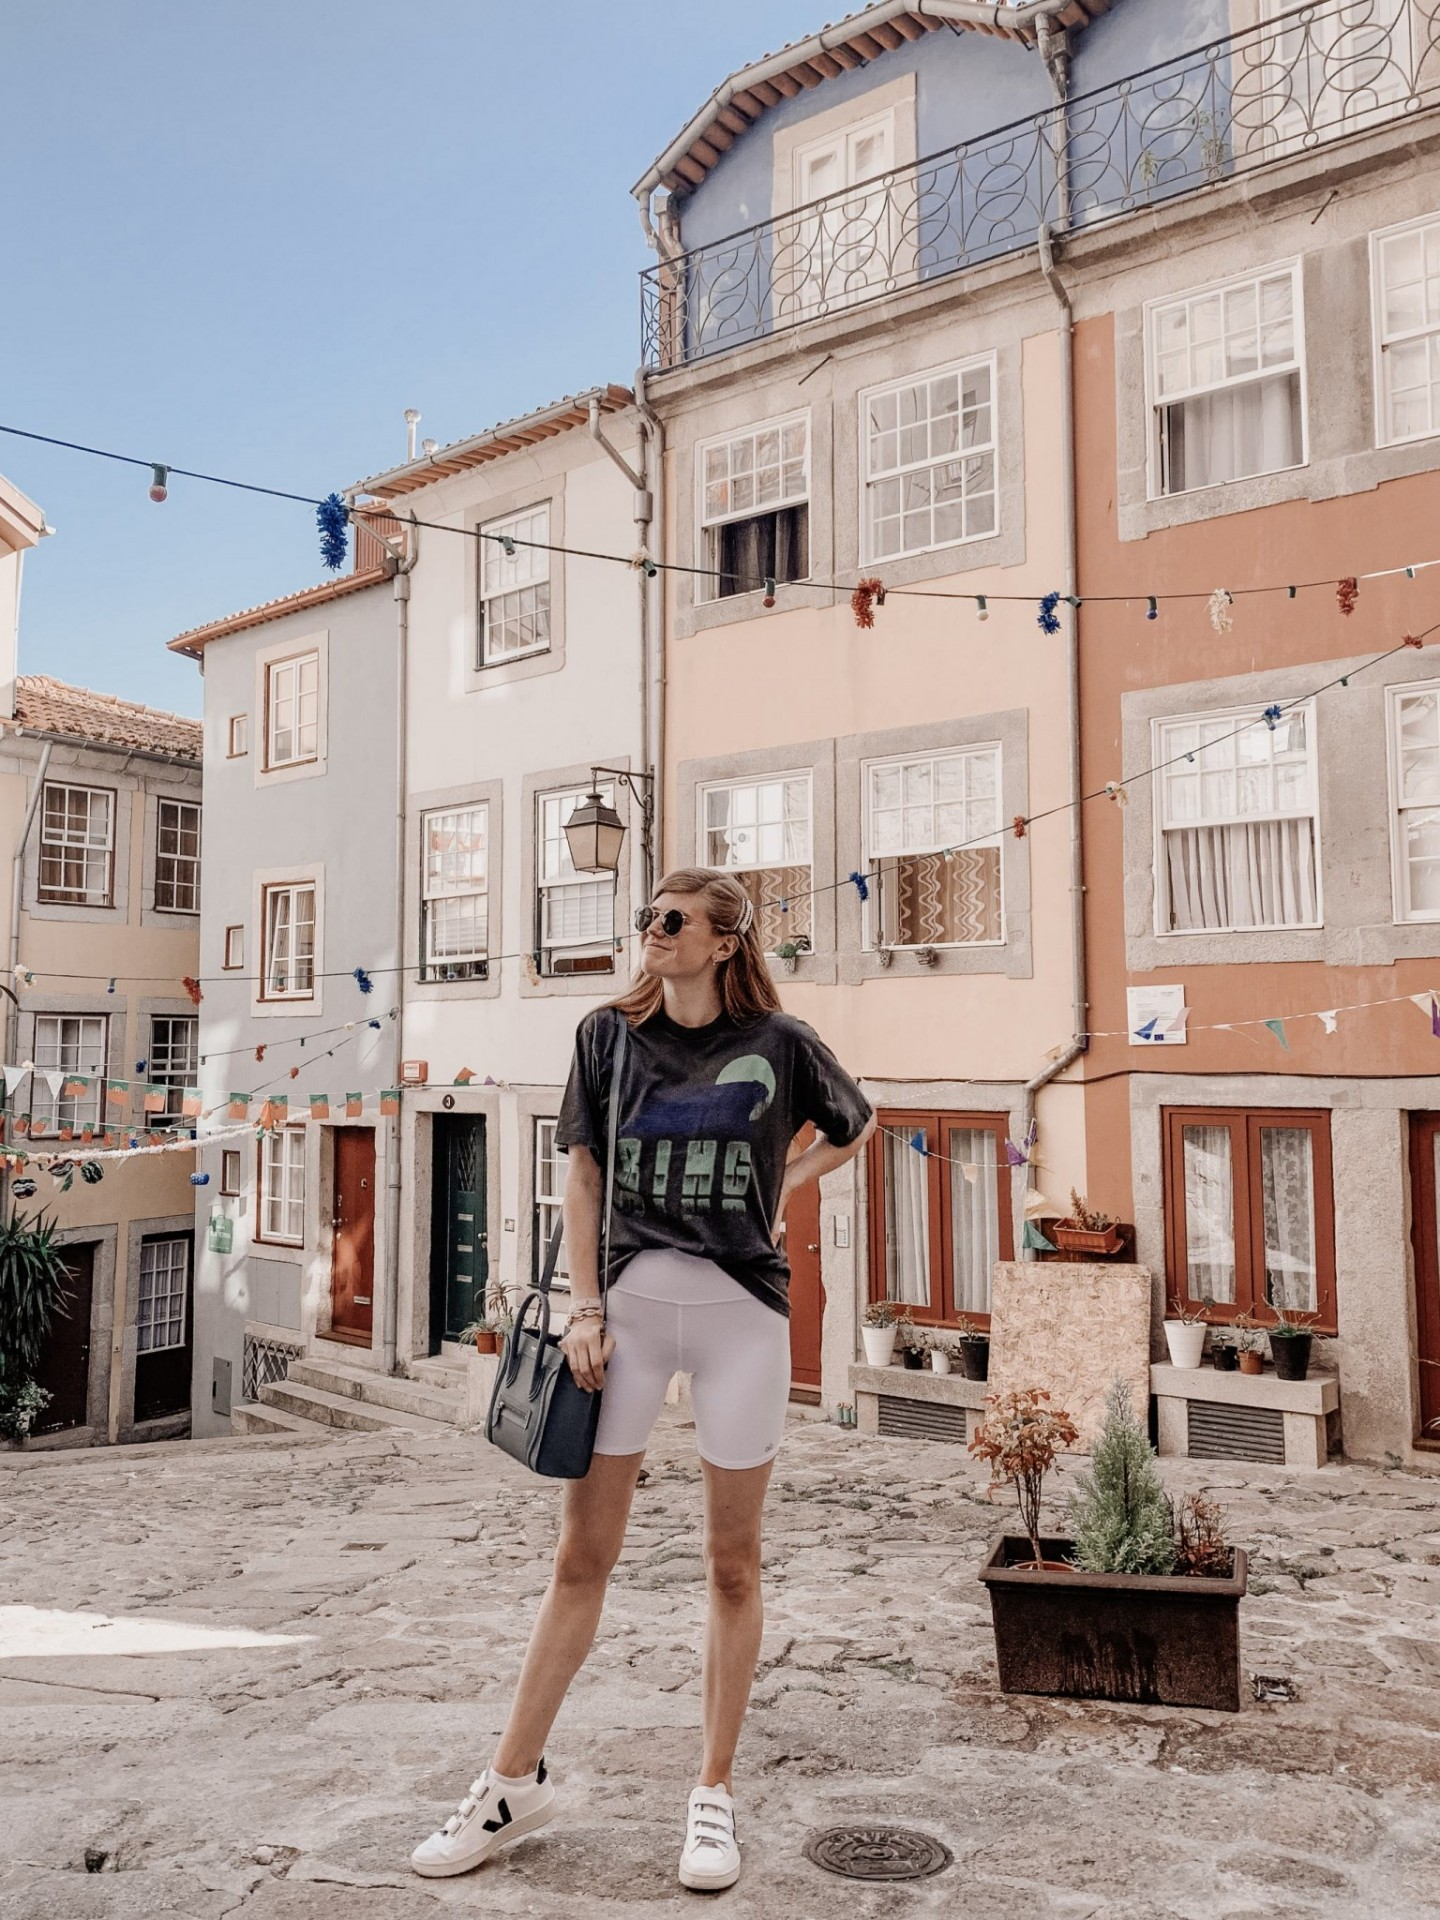 Lifestyle blogger Mollie Moore shares a Porto travel guide | A Porto Portugal Travel Guide by popular Great Britain international travel blogger, Mollie Moore: image of a woman standing on a cobble stone street surrounded by colorful buildings with pennant banners strung overhead.